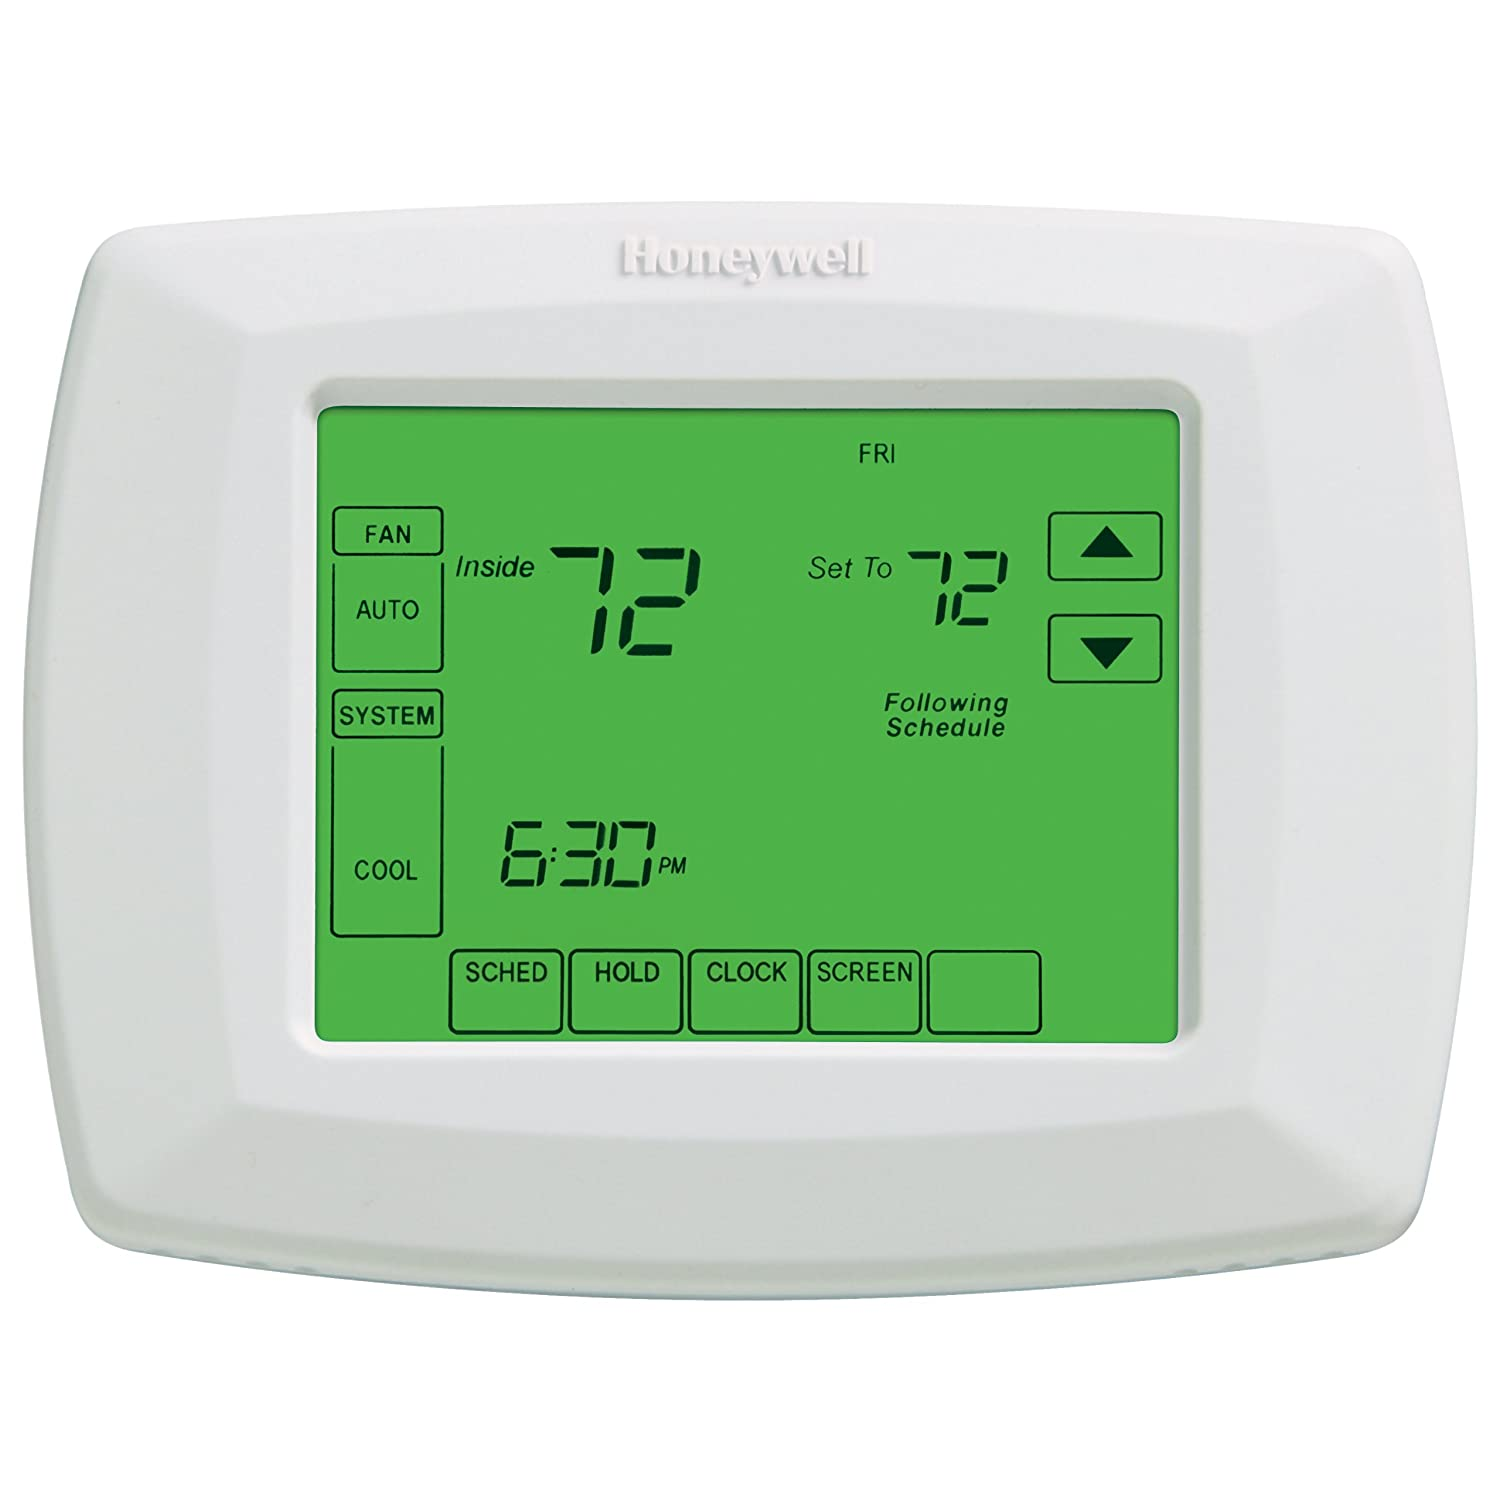 8 wire thermostat wiring diagram with Honeywell Programmable Thermostat Blogspot on P 0996b43f80759c3c further Single Pole Vs Double Pole Wiring Diagrams besides Dgaa070bdtb Coleman Gas Furnace Parts further Install The Honeywell Lyric Thermostat Like A Pro together with Topic.